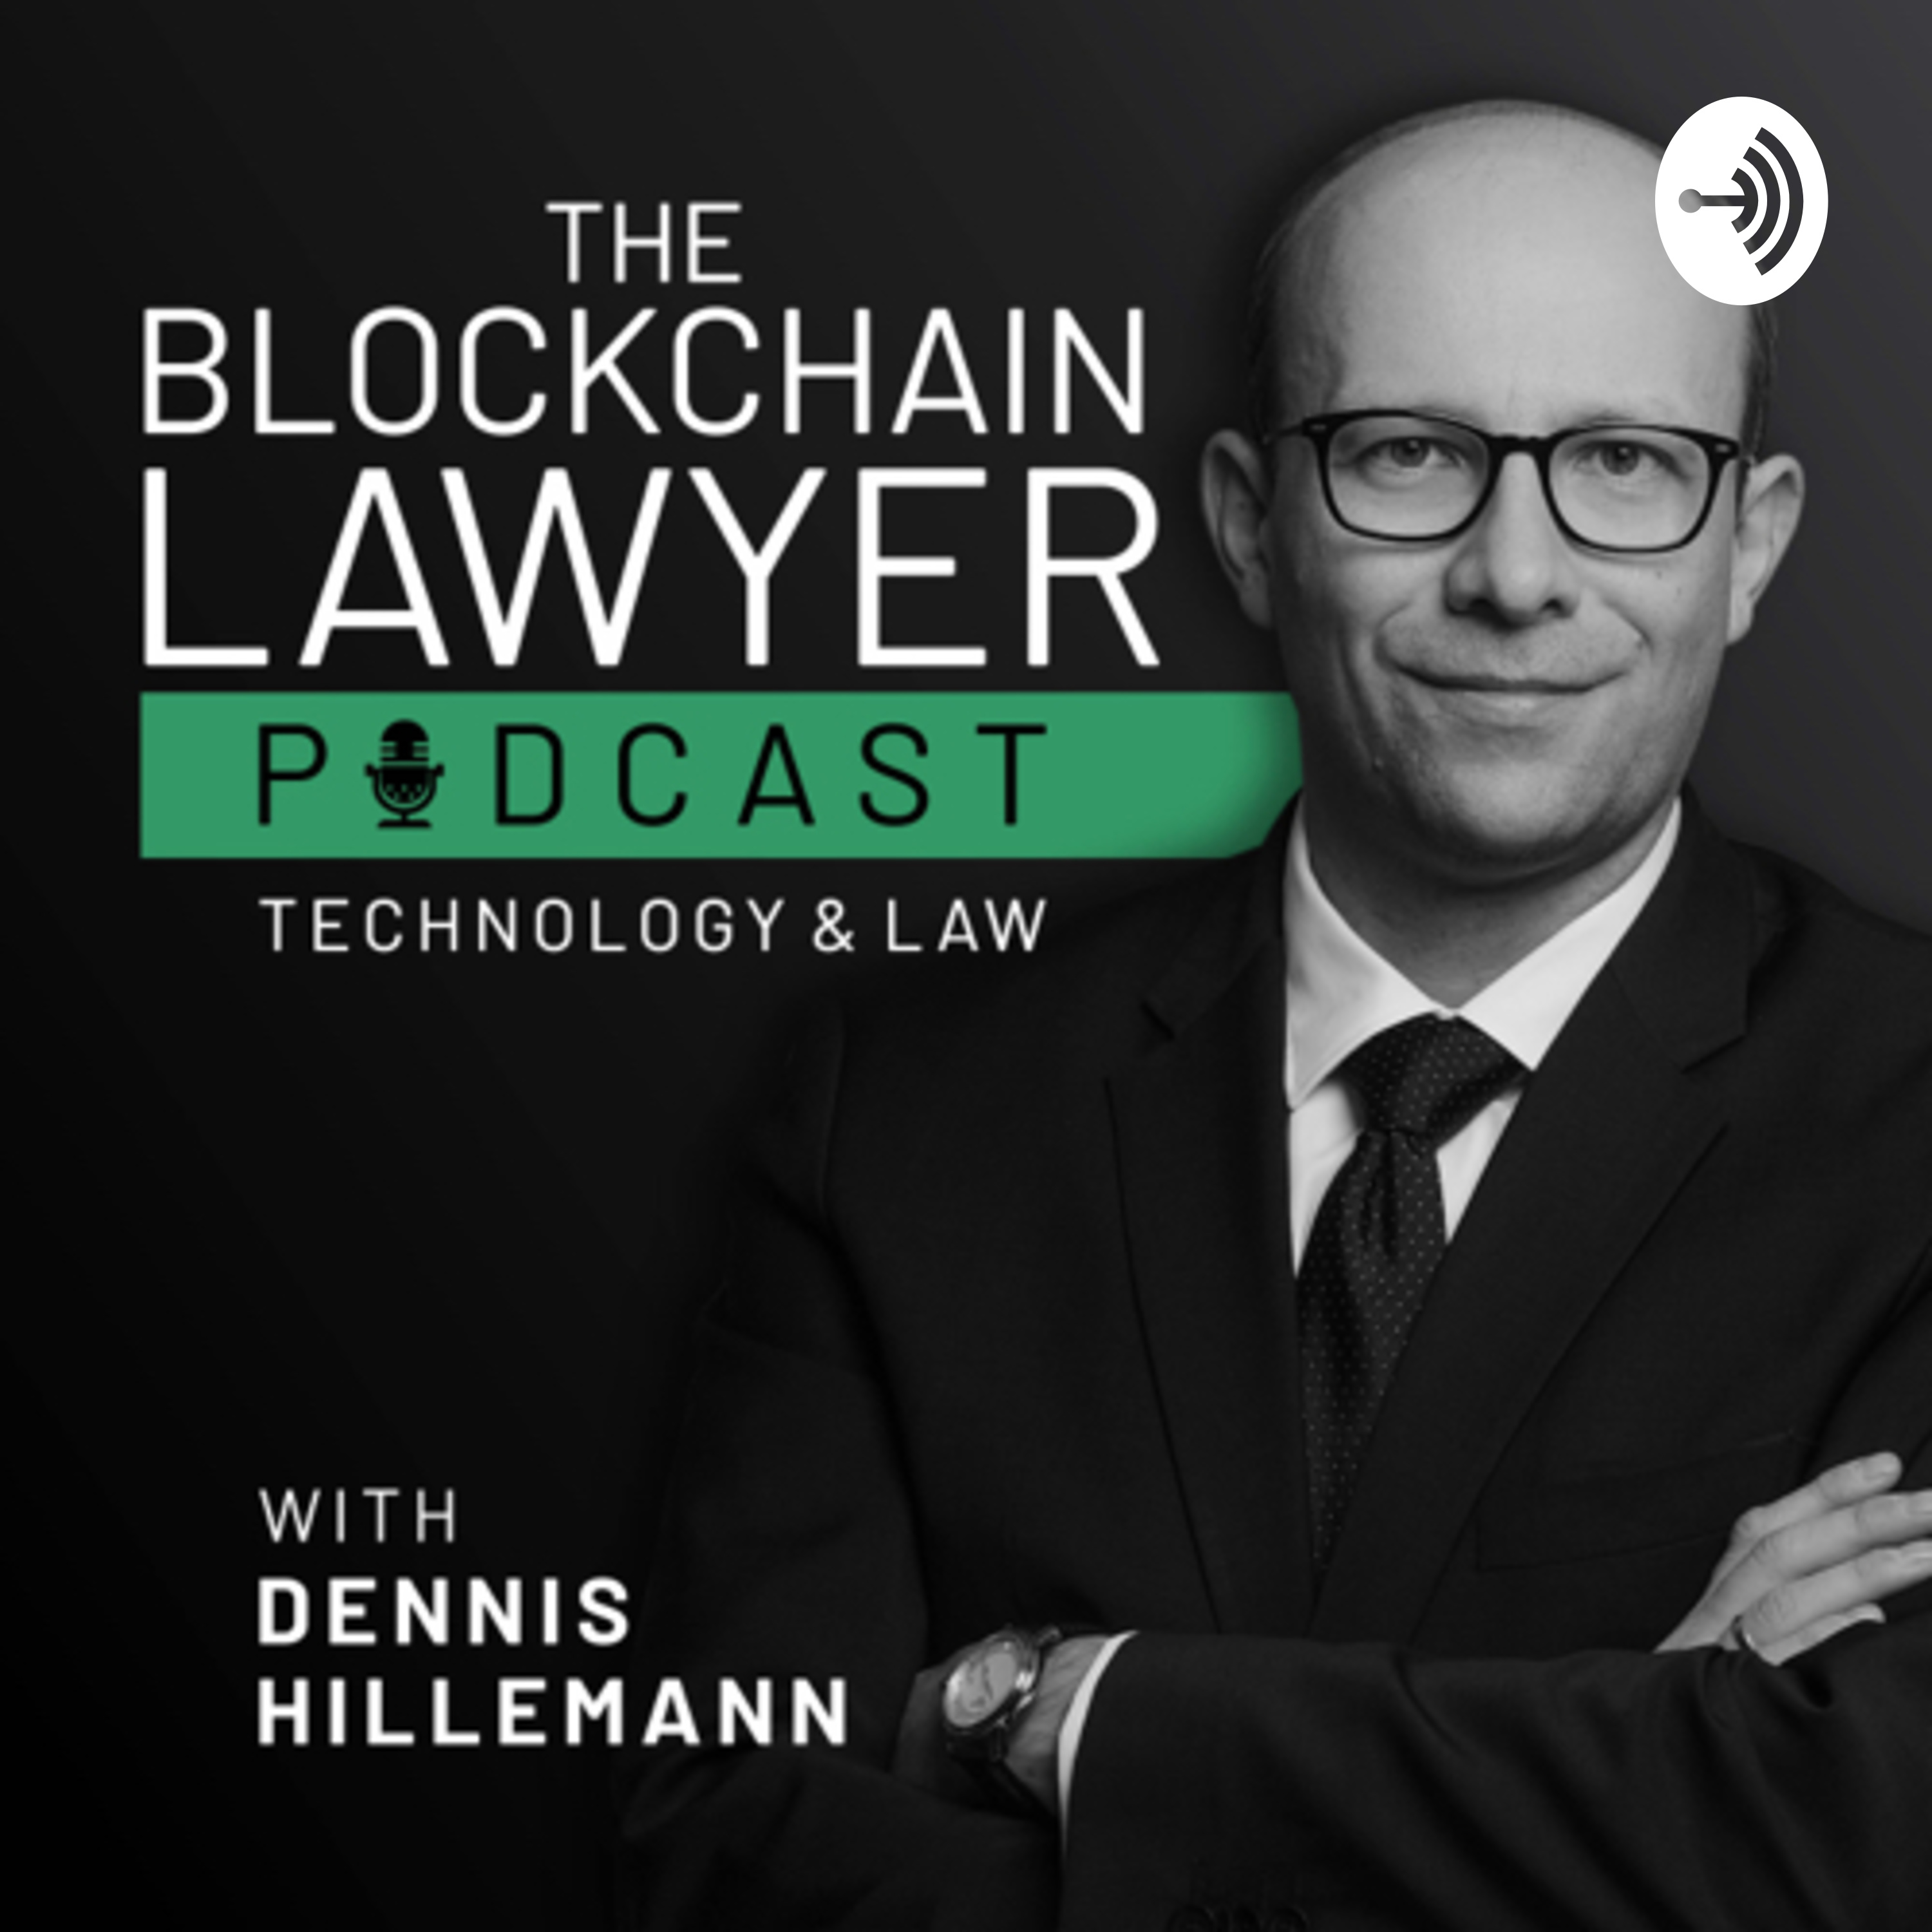 EP. 26: The regulation of new technologies (with Michael Kolain)